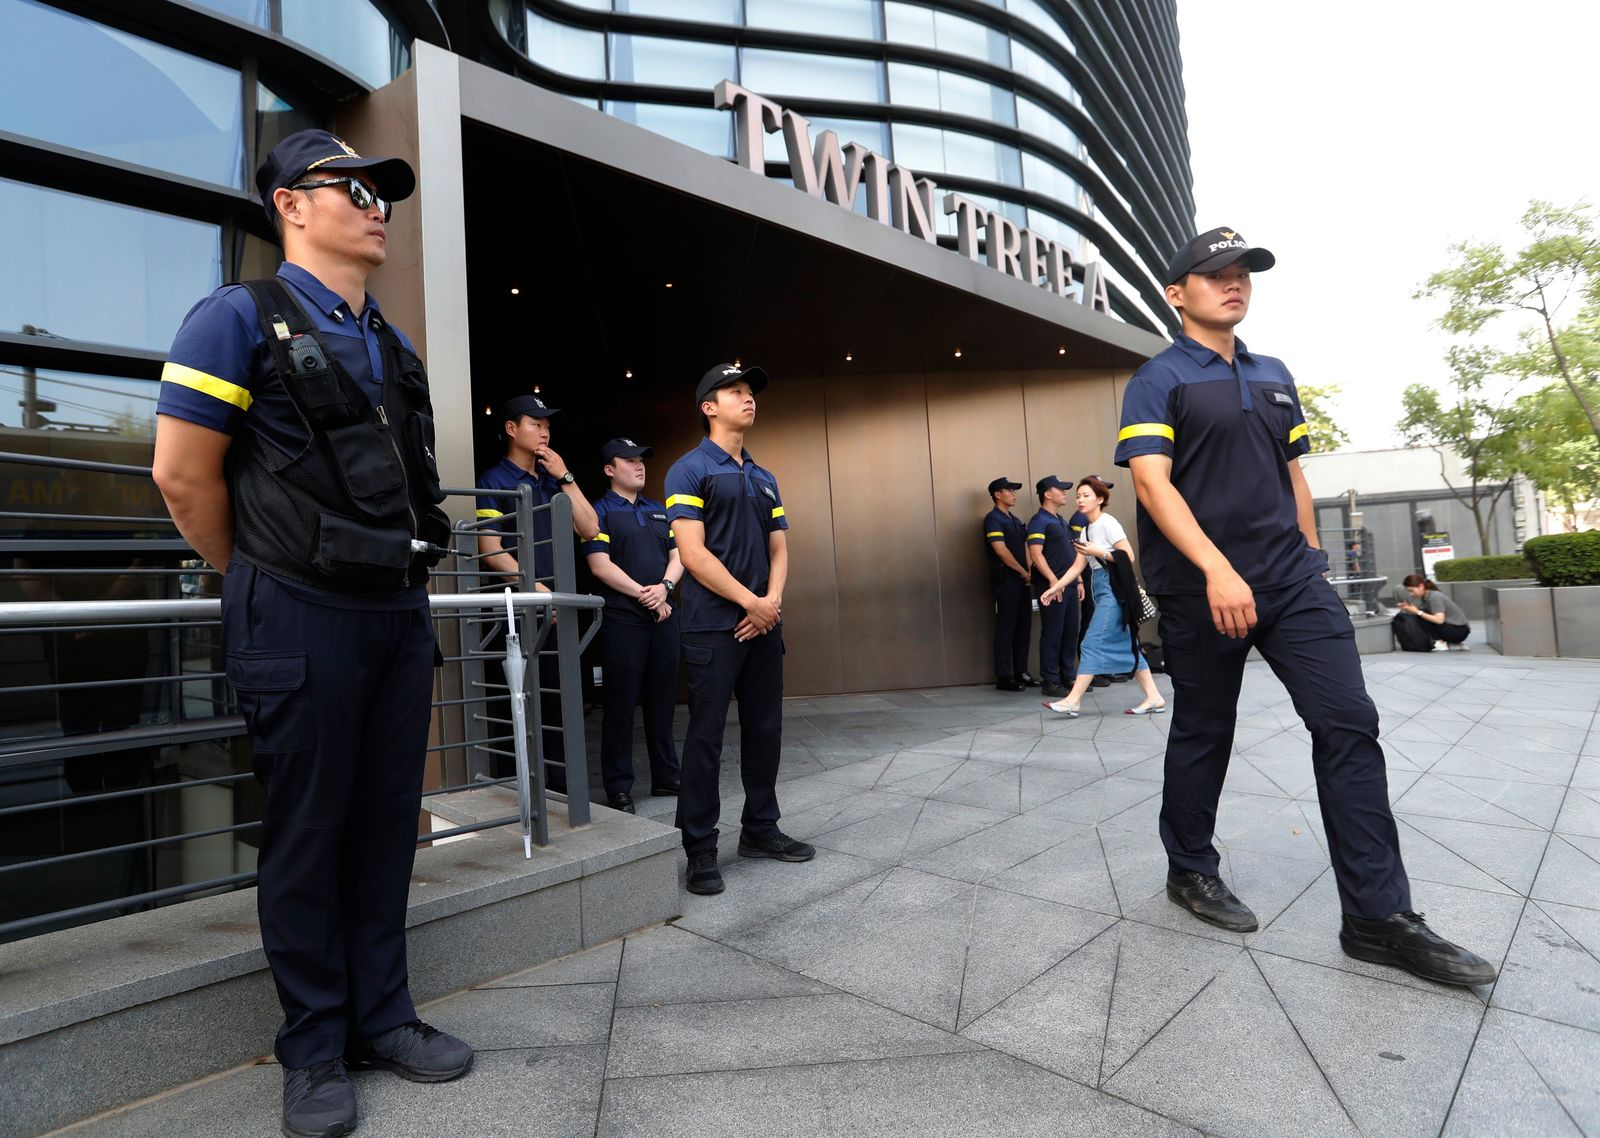 South Korean police officers stand guard against possible rallies against Japan in front of a building where the Japanese embassy is located in Seoul, South Korea, Friday, July 19, 2019.{ } (AP Photo/Ahn Young-joon)